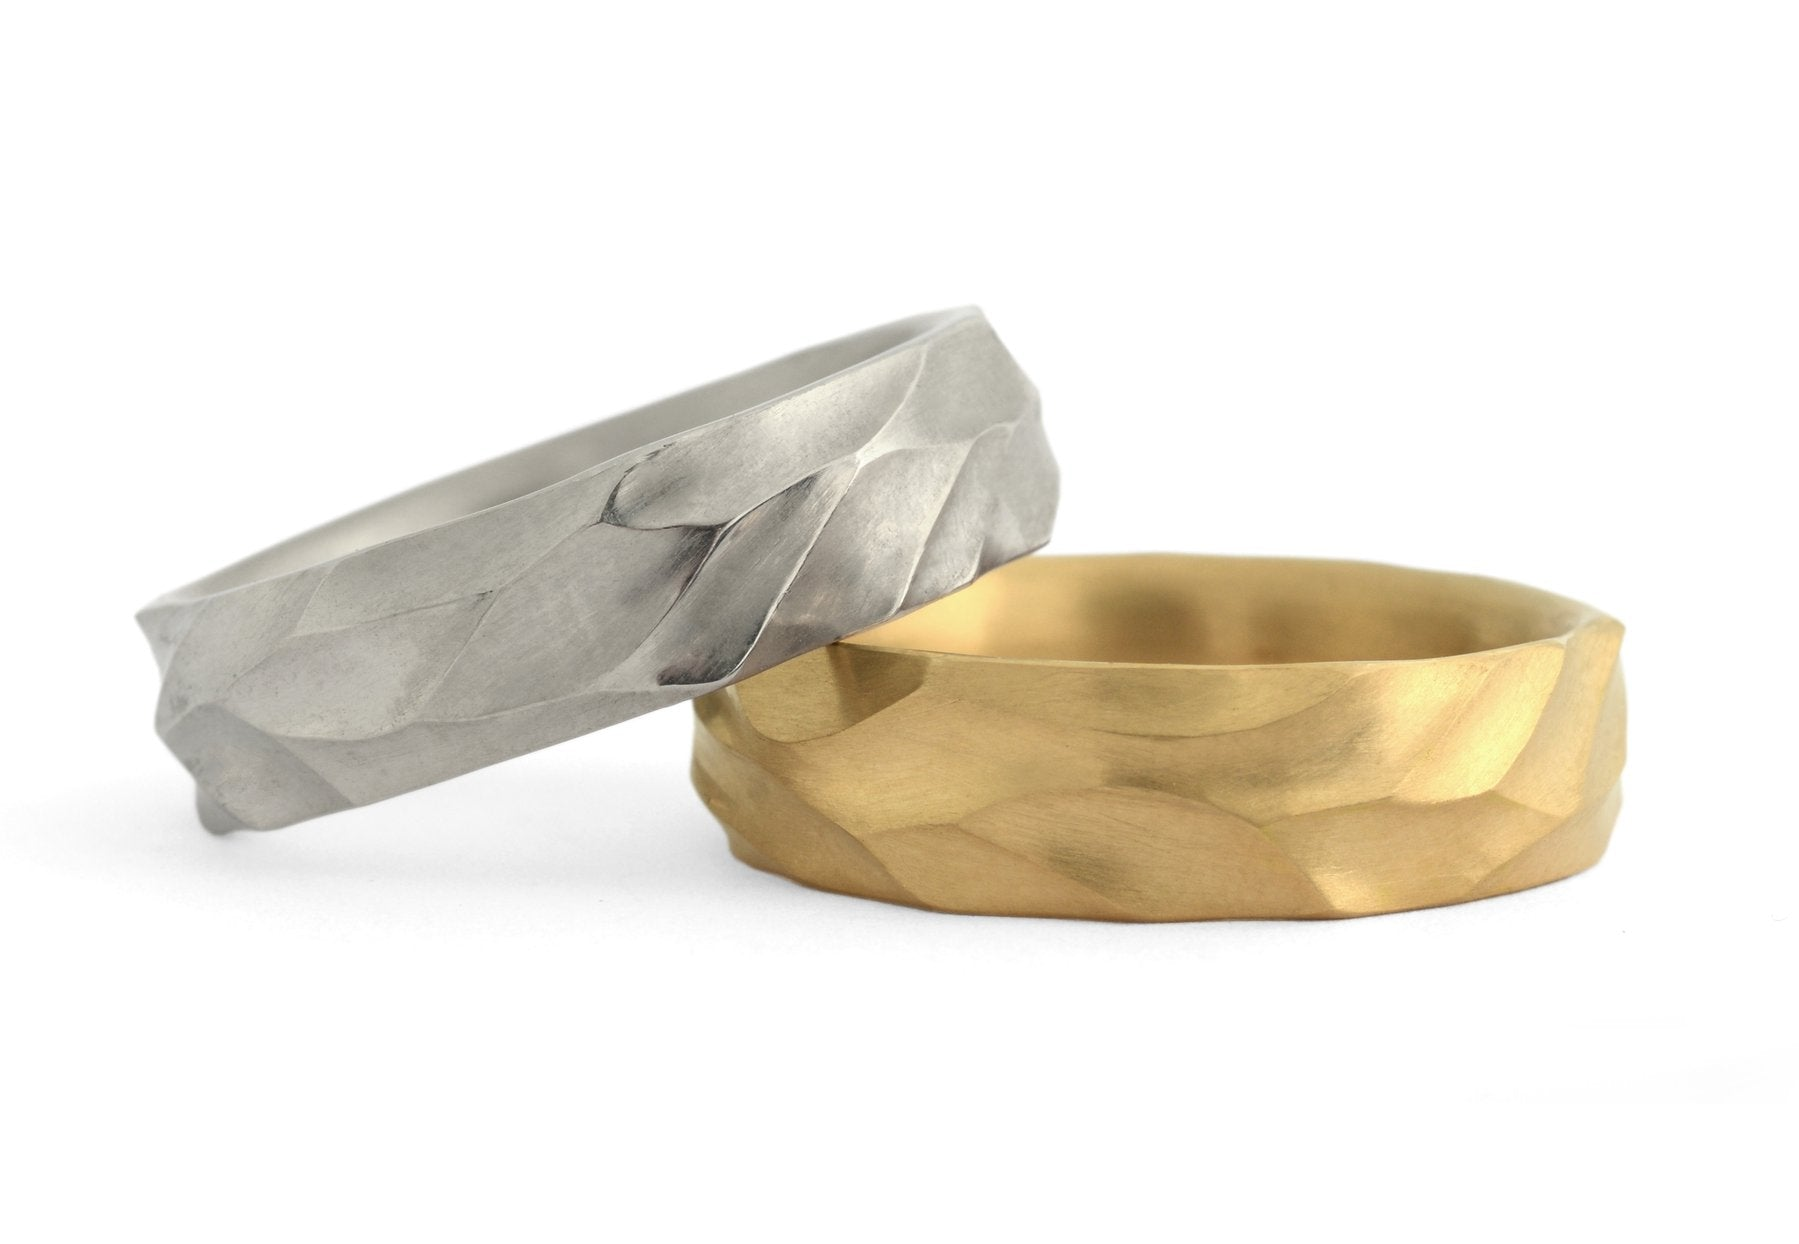 Hand-carved Dune men's wedding bands in yellow gold and platinum